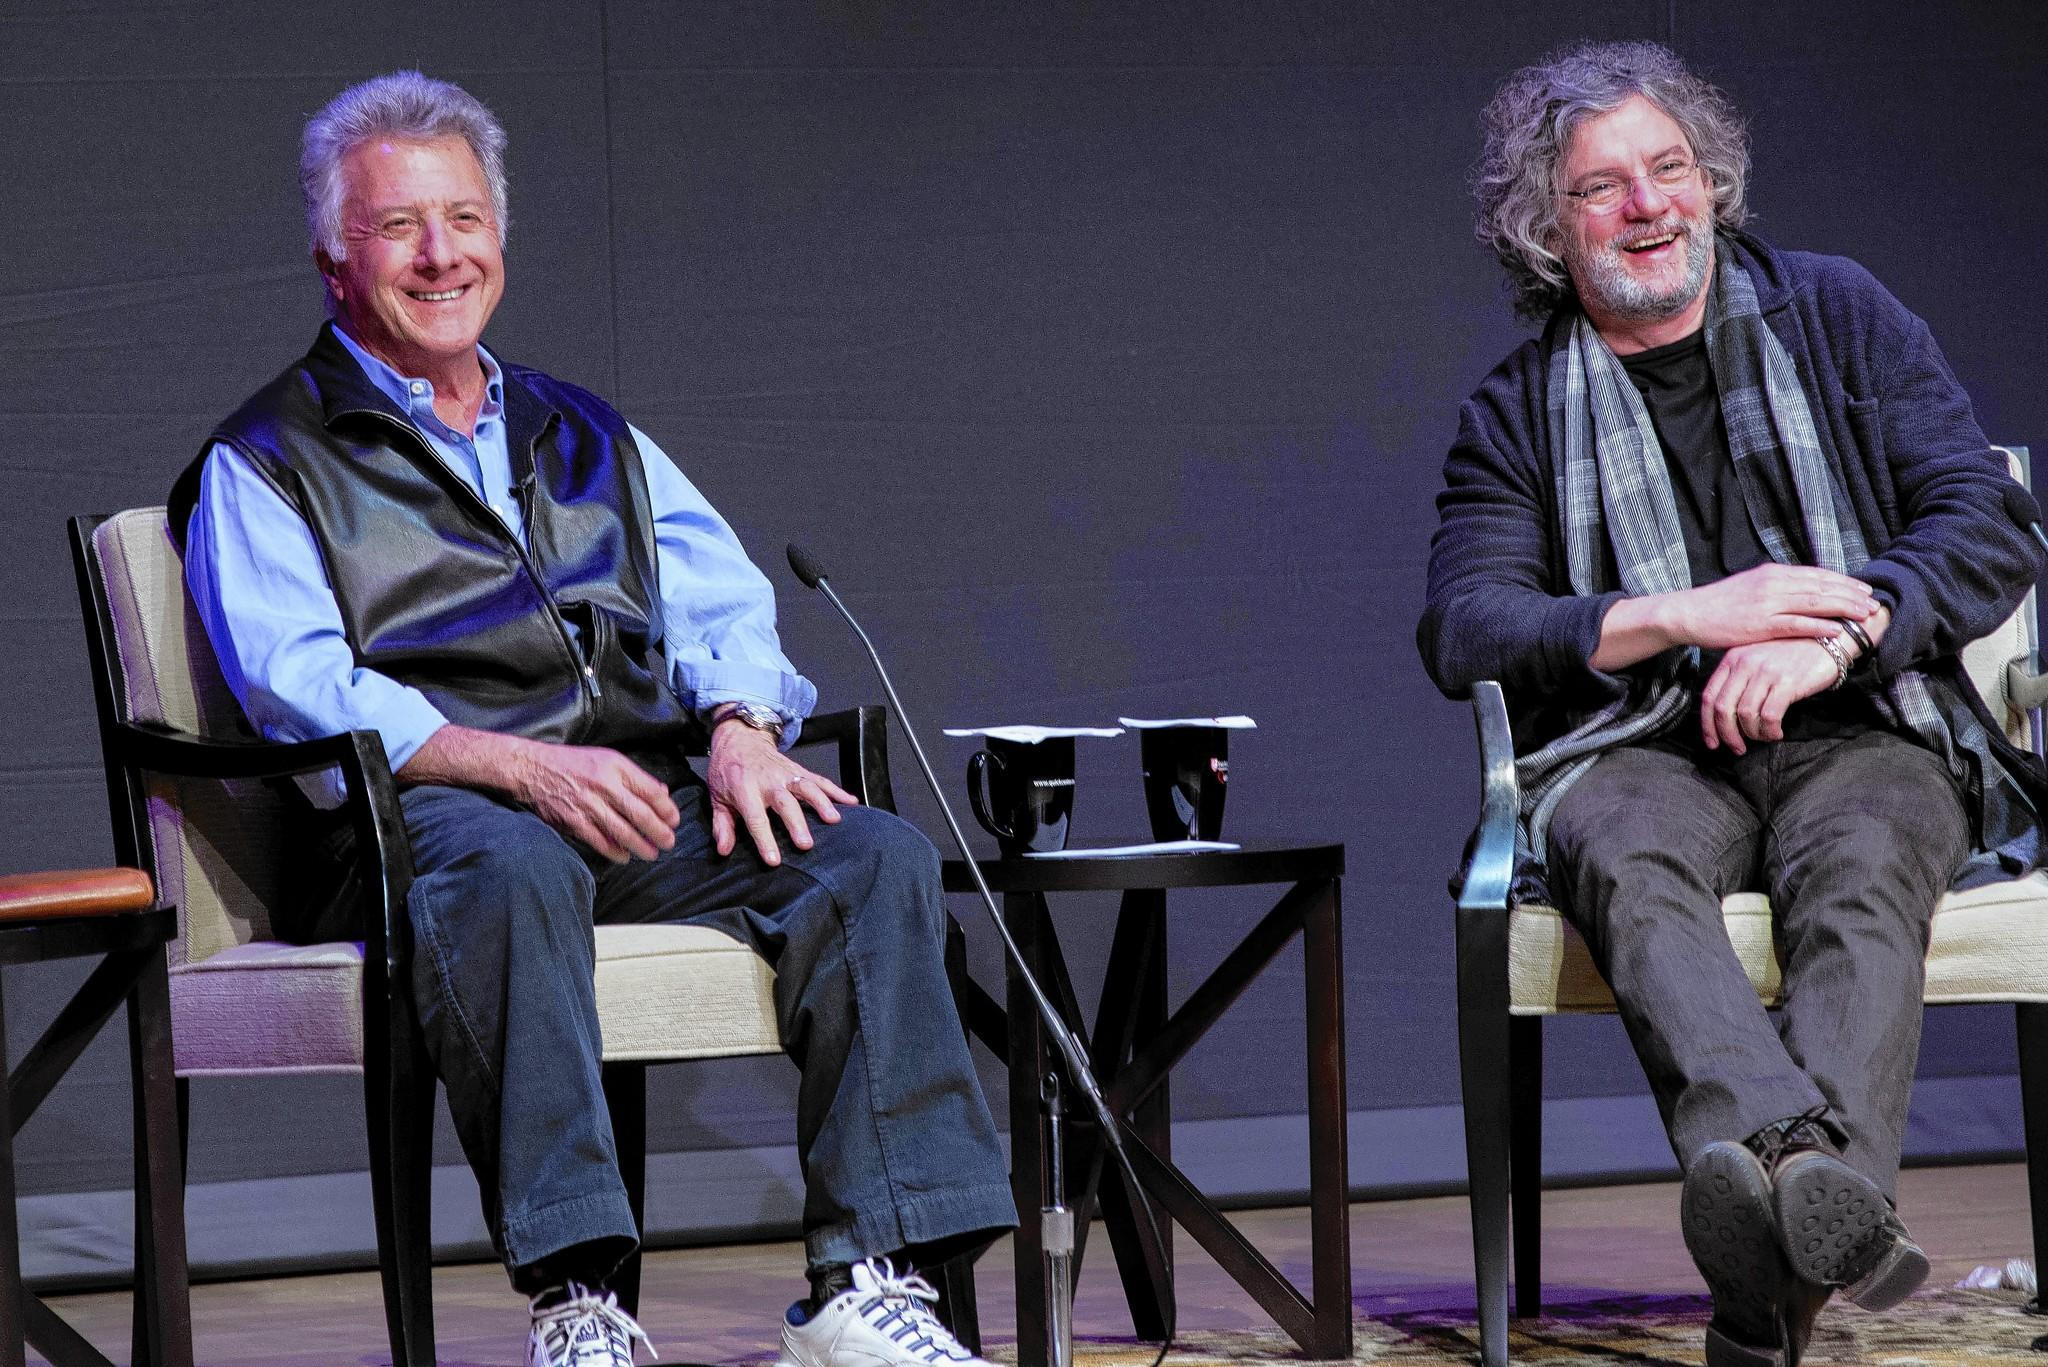 "Actor Dustin Hoffman and director François Girard (left-right) on stage at Fairfield University's Regina A. Quick Center for the Arts in Fairfield, Conn., on Thursday, February 20, 2014. In a appearance presented by Fairfield University, ""An Award-Winning Conversation."""